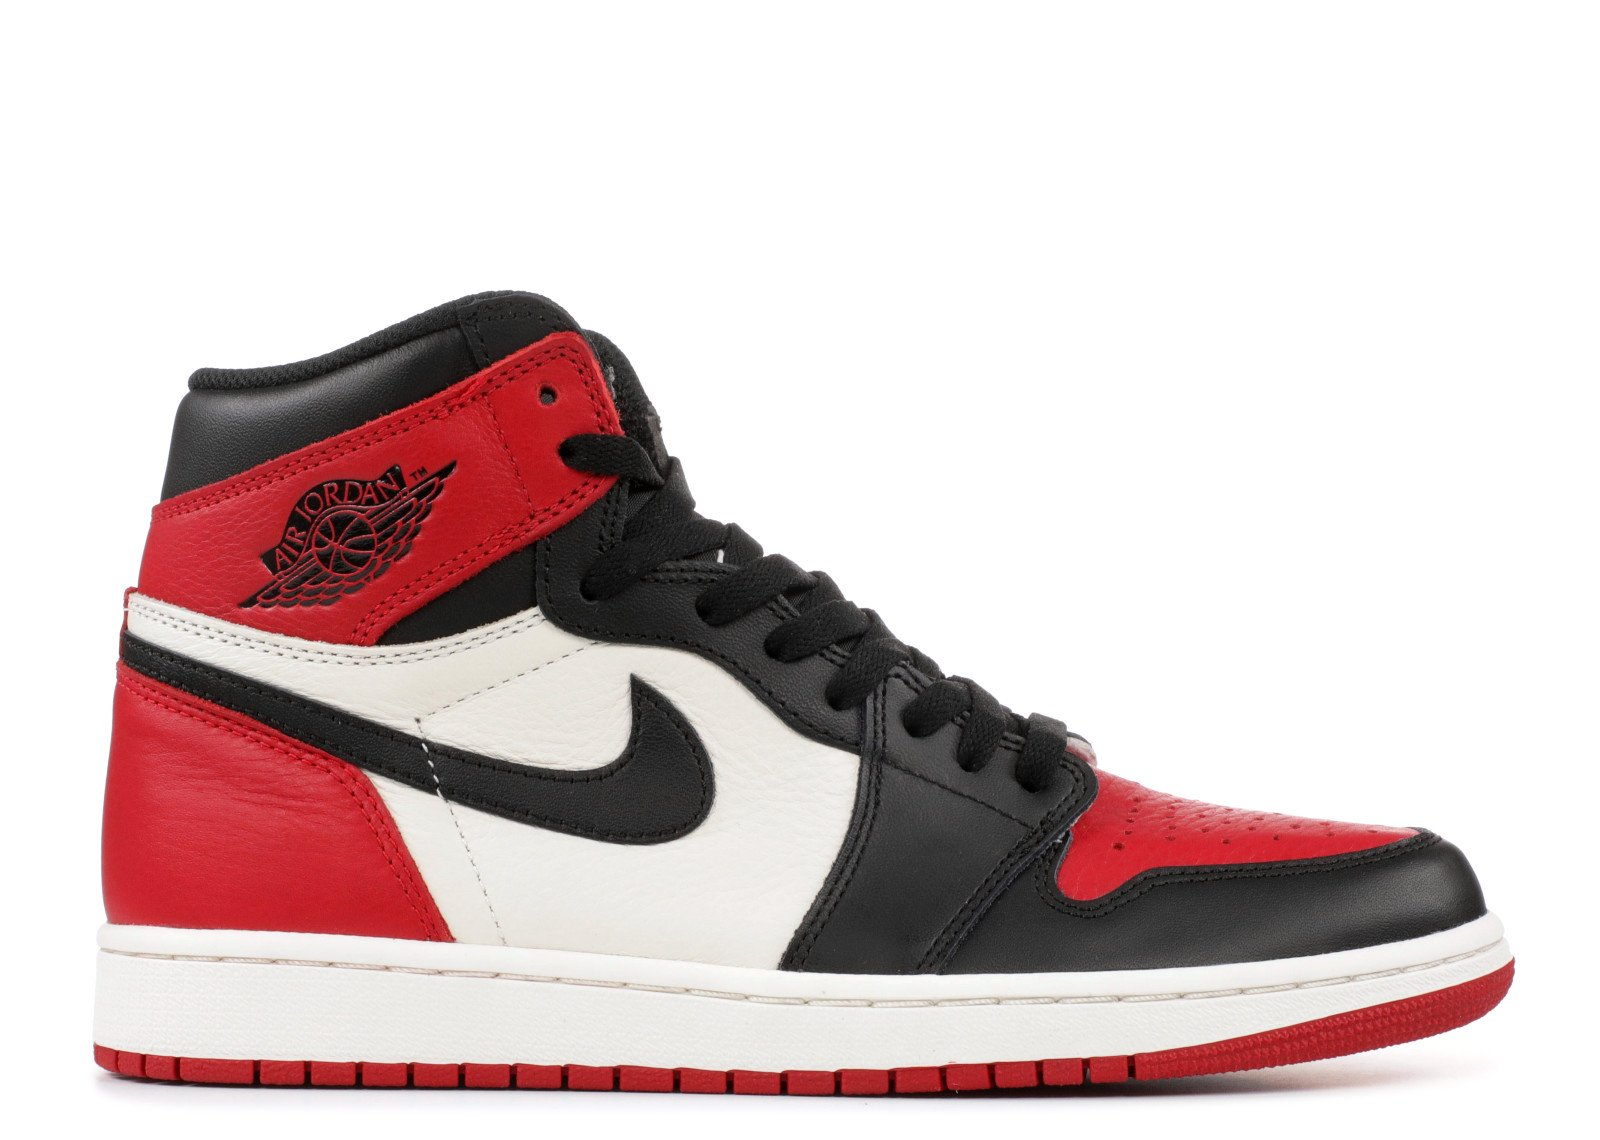 Jordan 1 Retro High Bred Toe - CookiesandKicksLA